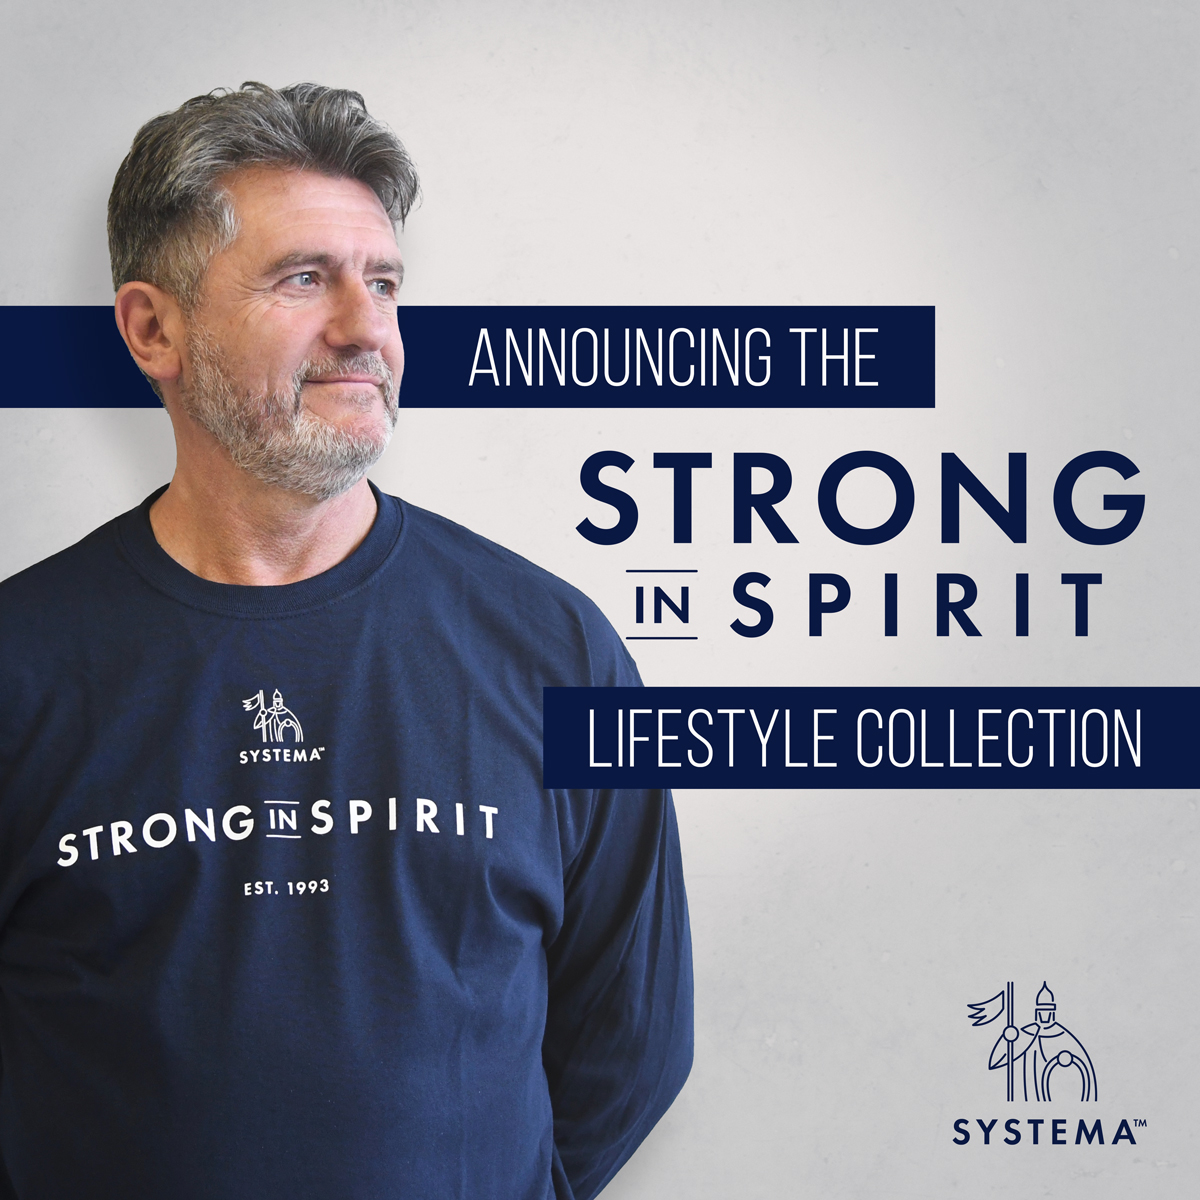 Strong in Spirit Lifestyle Collection